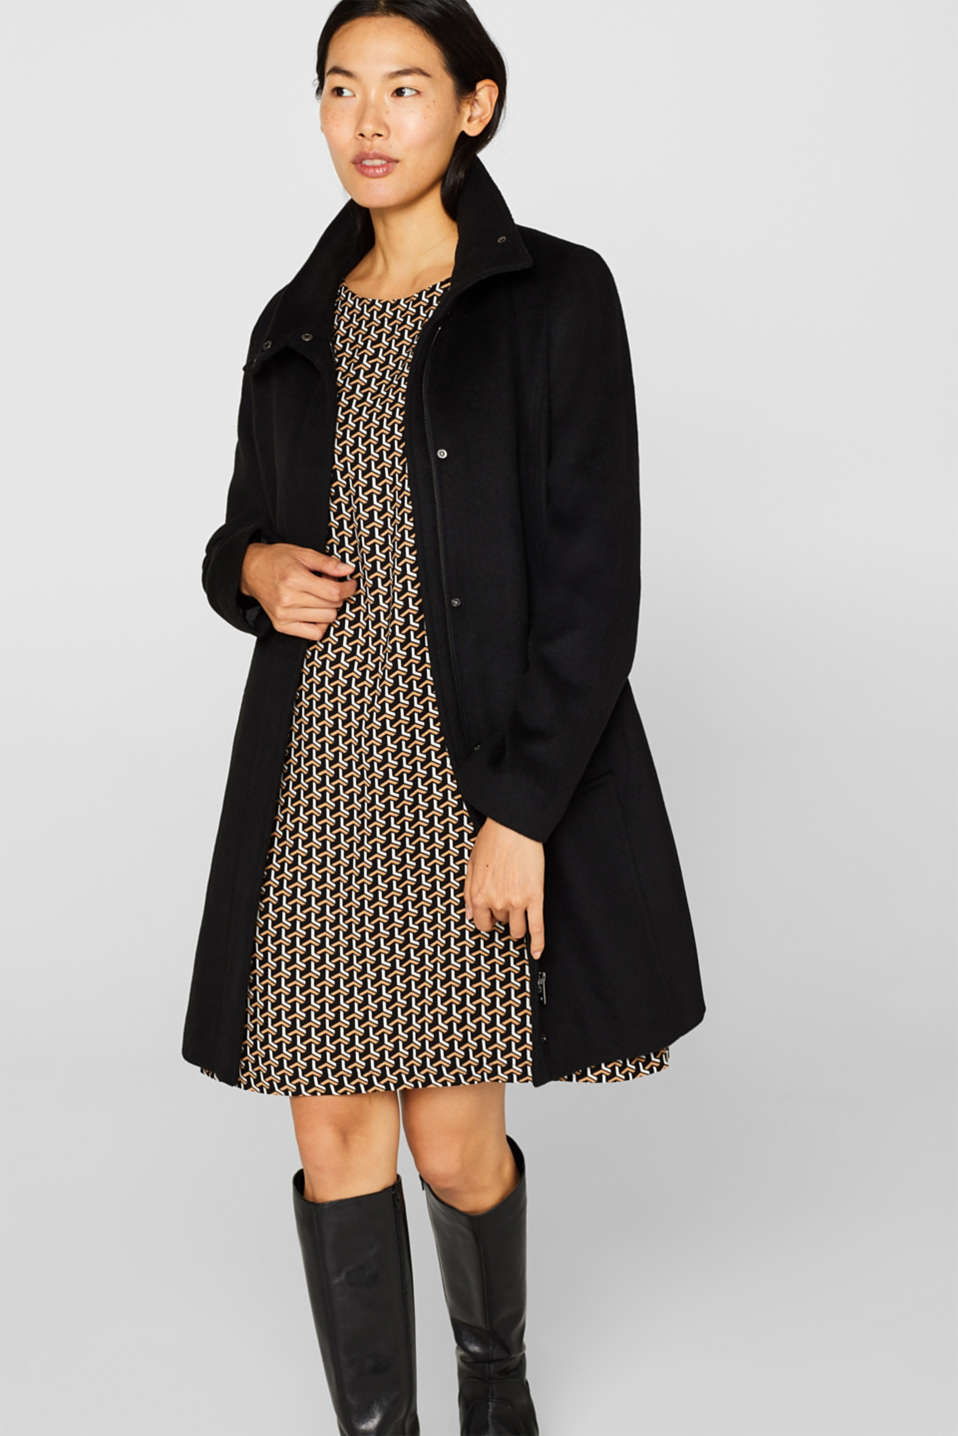 With wool: coat with a wide collar, BLACK, detail image number 7